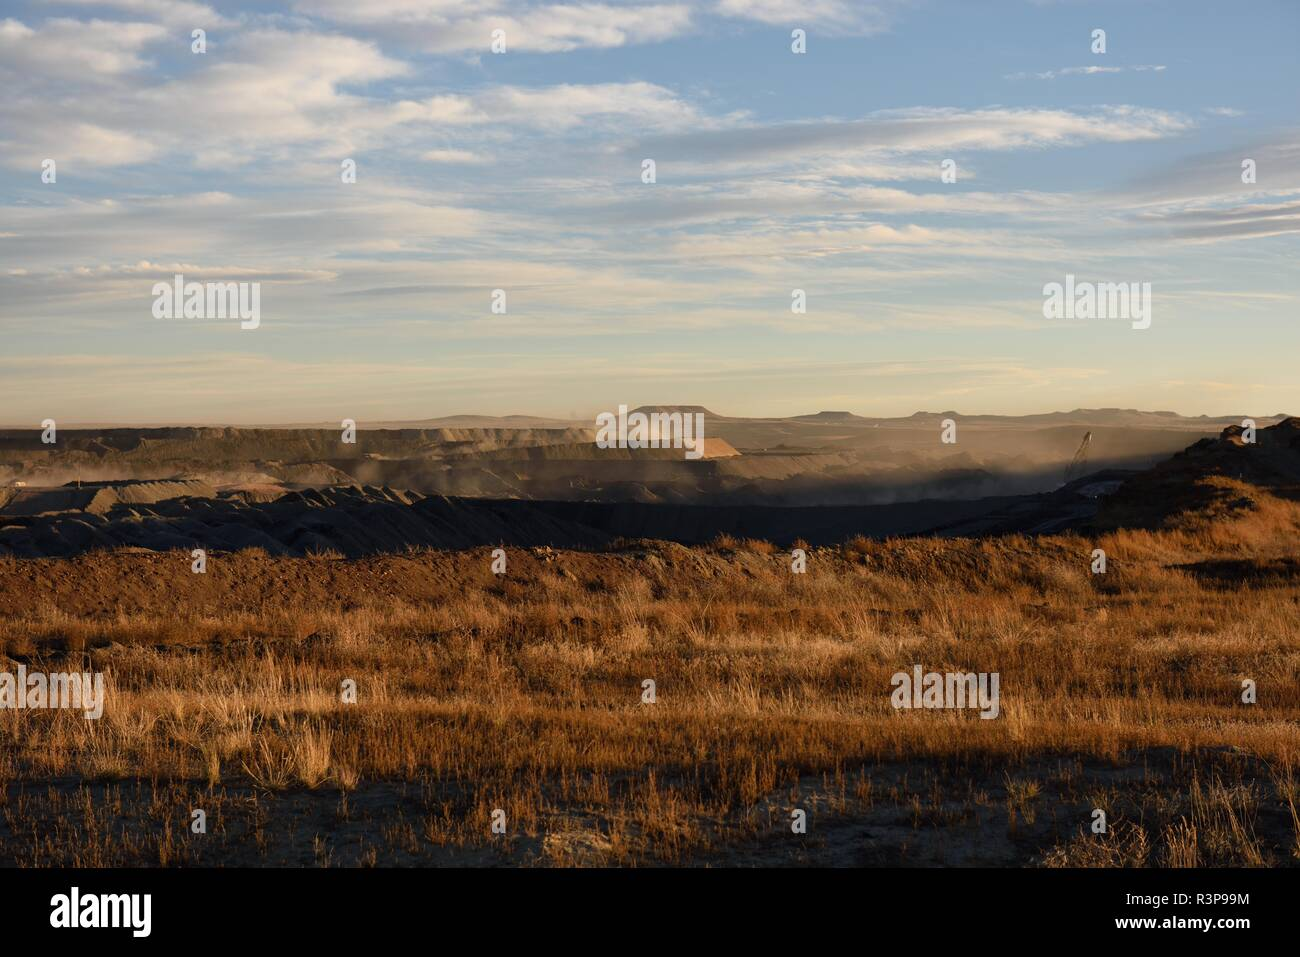 Dust clouds rising from inside the landscape of an open pit coal mine in the Powder River Basin in Wyoming, USA. Stock Photo